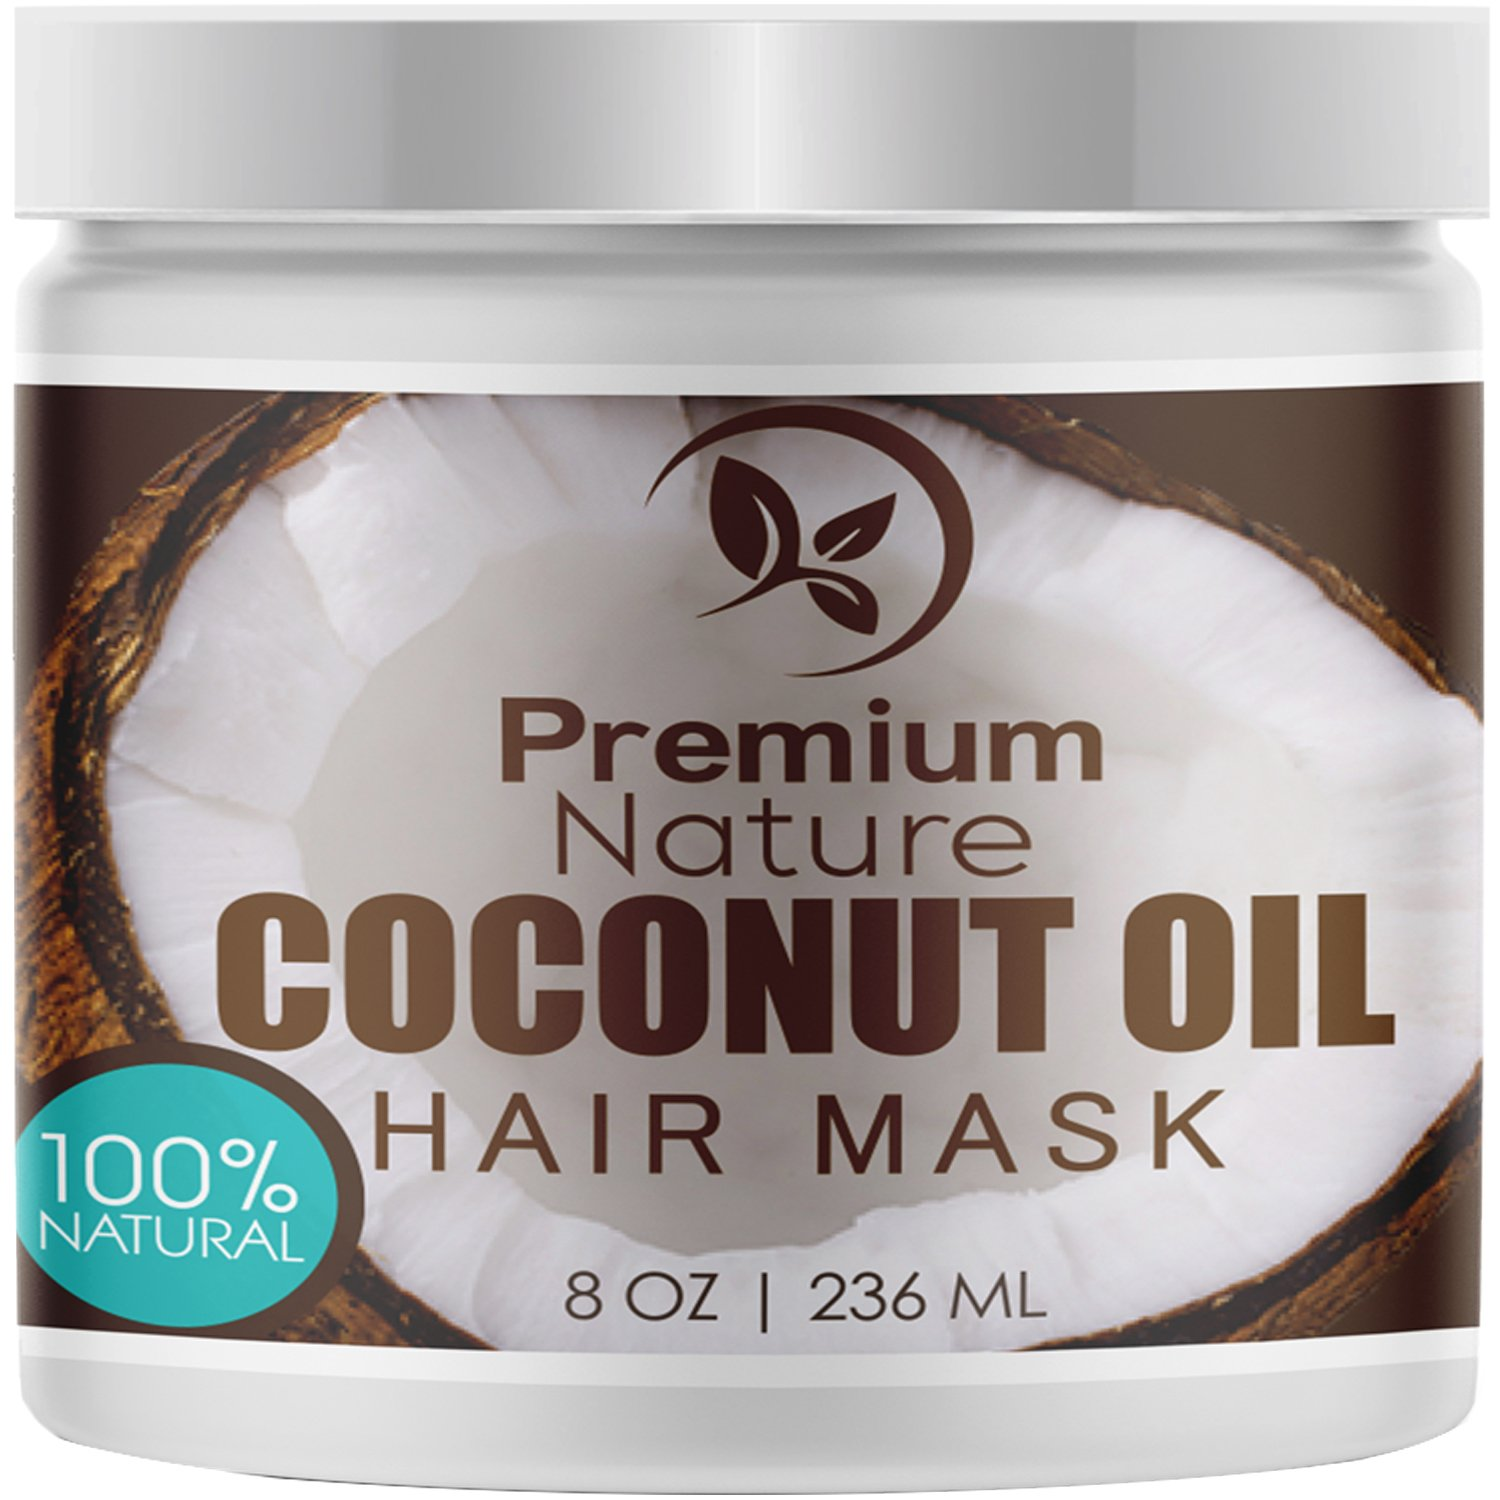 Amazoncom All Natural Coconut Oil Shampoo For Hair -9561